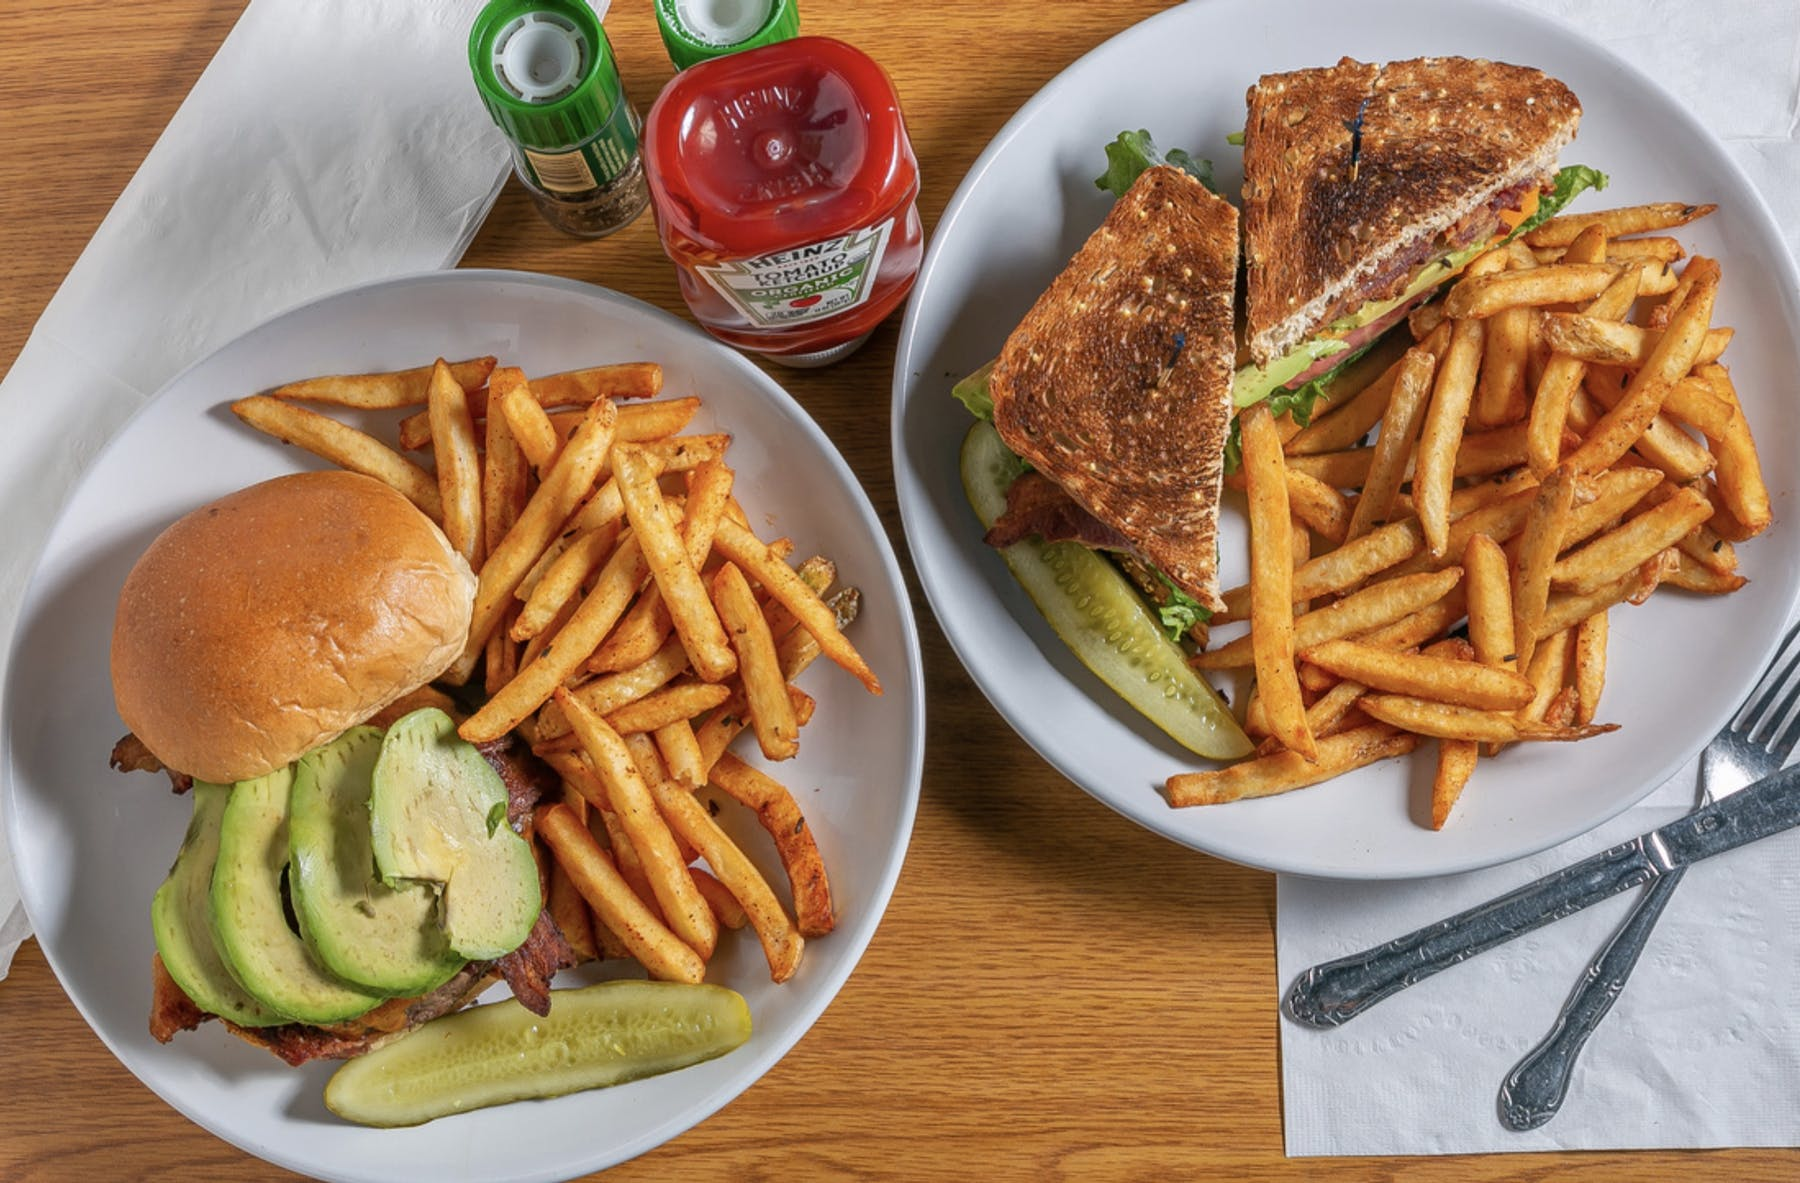 a plate of food with a sandwich and fries on a table